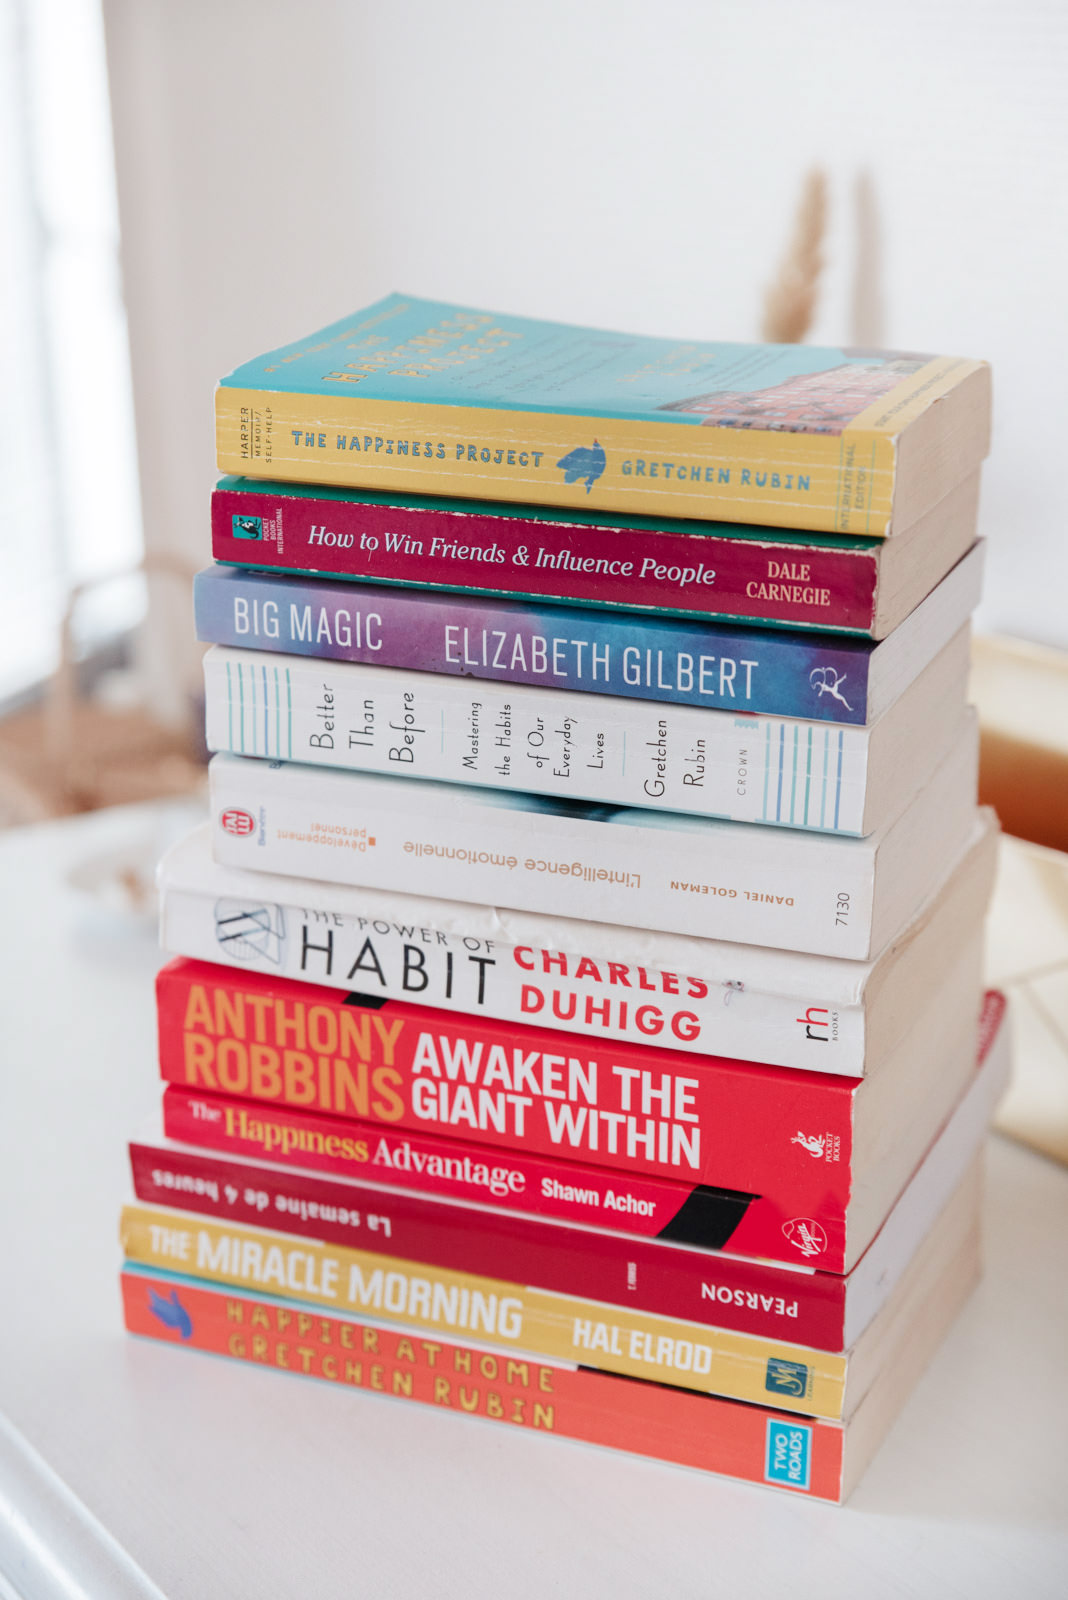 Blog-Mode-And-The-City-Lifestyle-Be-Inspired-11-livres-developpement-ersonnel-5